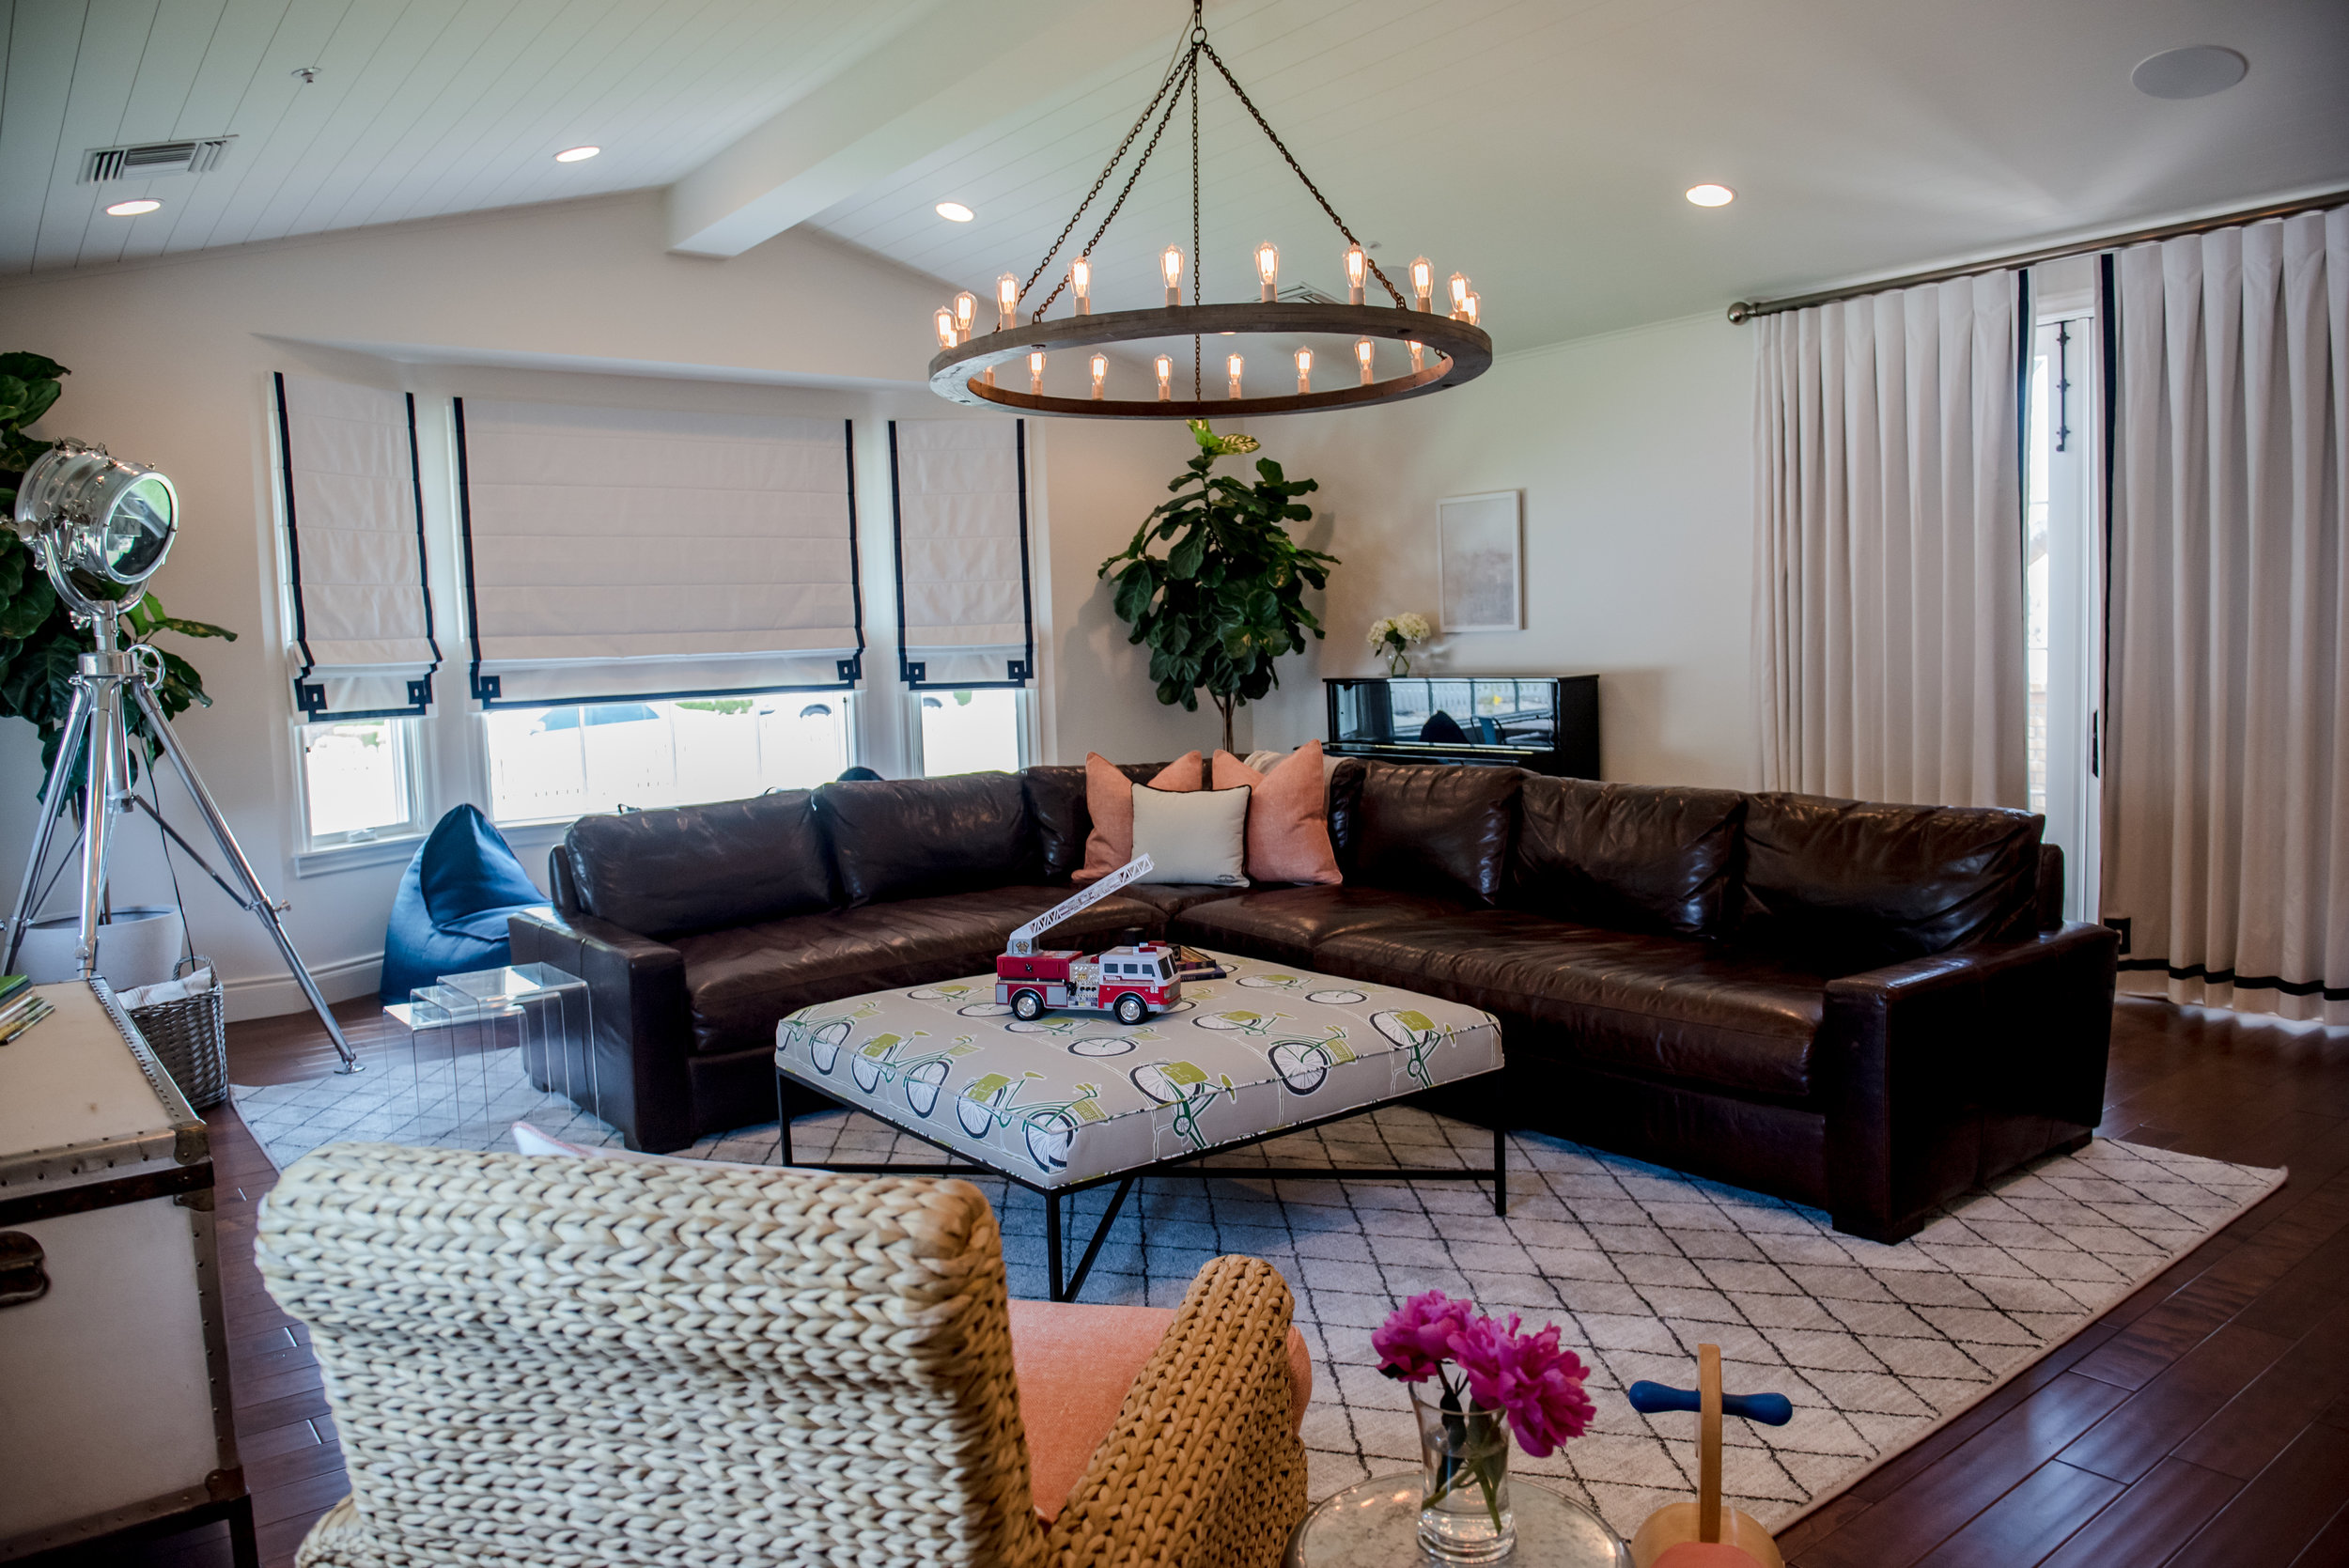 29+Family+Play+Drapes+Chandelier+Sectional+Chair+Ottoman.jpg